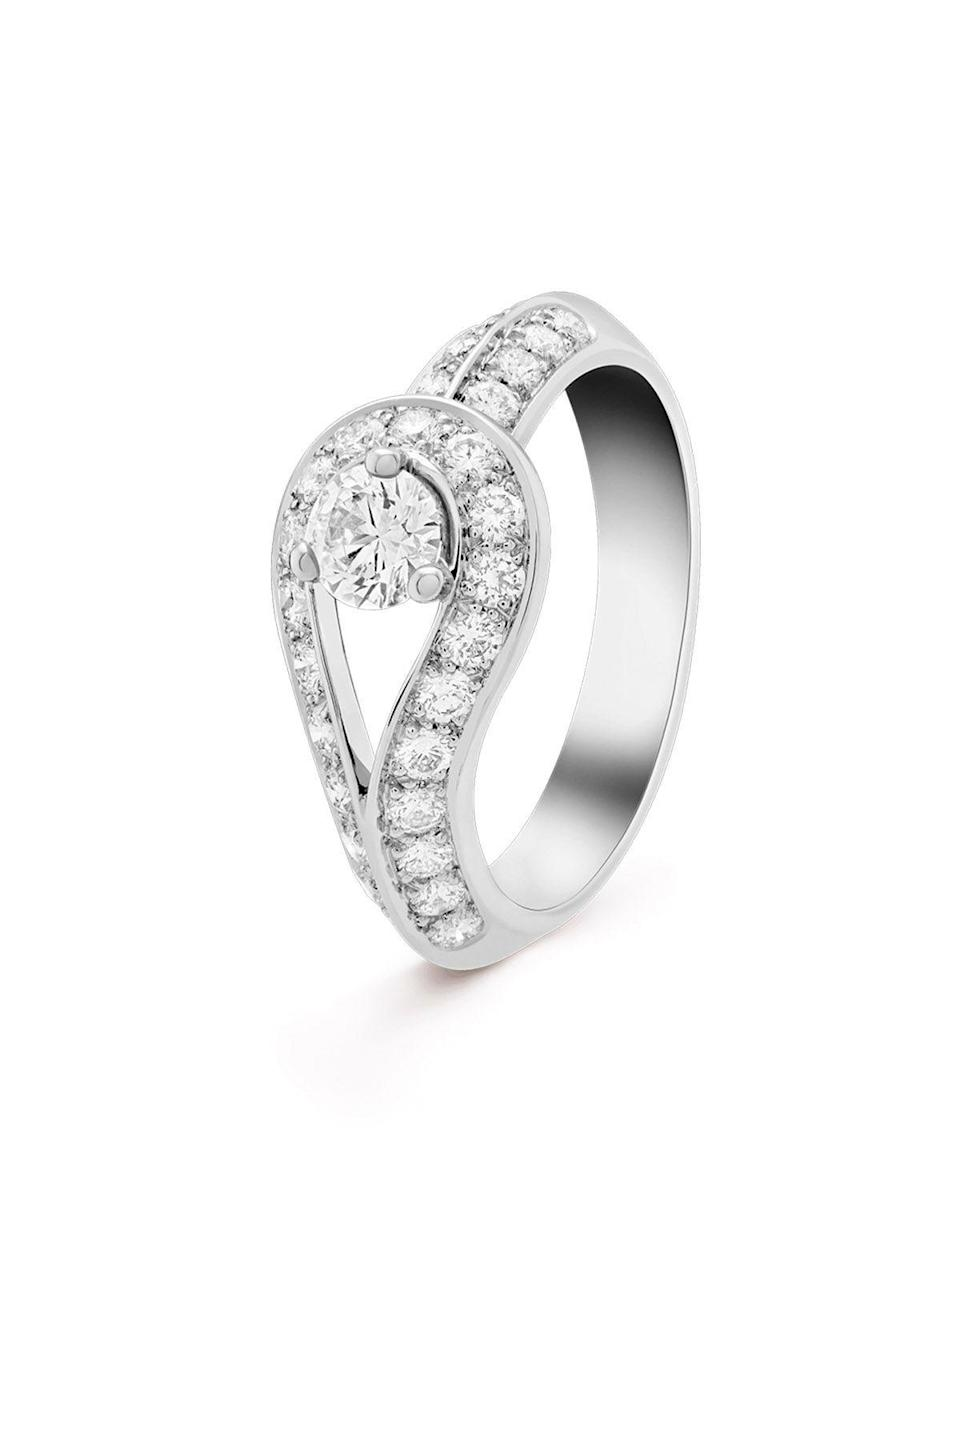 """<p><strong>Van Cleef & Arpels</strong></p><p>vancleefarpels.com</p><p><strong>$6000.00</strong></p><p><a href=""""https://go.redirectingat.com?id=74968X1596630&url=https%3A%2F%2Fwww.vancleefarpels.com%2Fus%2Fen%2Fcollections%2Fengagement%2Fengagement-rings%2Fvcard36100---couture-solitaire-platinum-round-diamond.html&sref=https%3A%2F%2Fwww.townandcountrymag.com%2Fstyle%2Fjewelry-and-watches%2Fg34777744%2Fbest-engagement-rings%2F"""" rel=""""nofollow noopener"""" target=""""_blank"""" data-ylk=""""slk:Shop Now"""" class=""""link rapid-noclick-resp"""">Shop Now</a></p><p>Van Cleef adds its own twist with this looped solitaire style. </p>"""